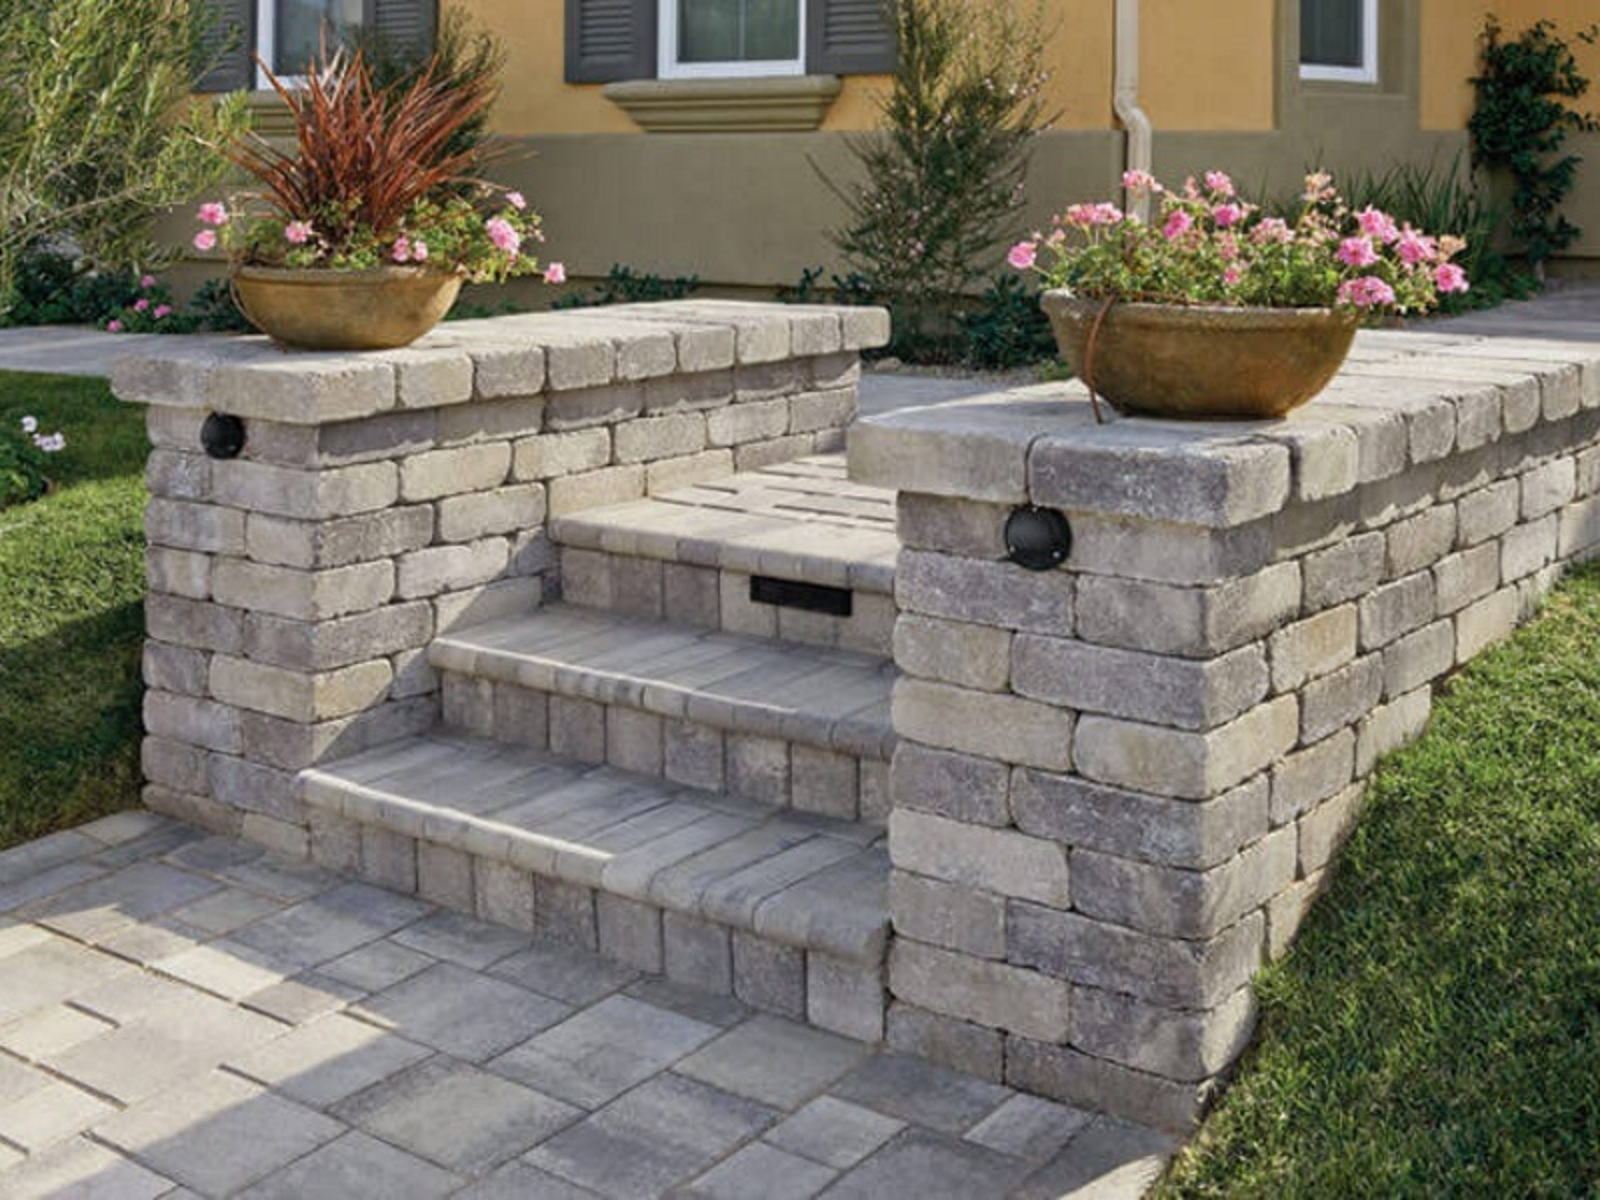 Tips to Choose the Best Paver Color for Your Project